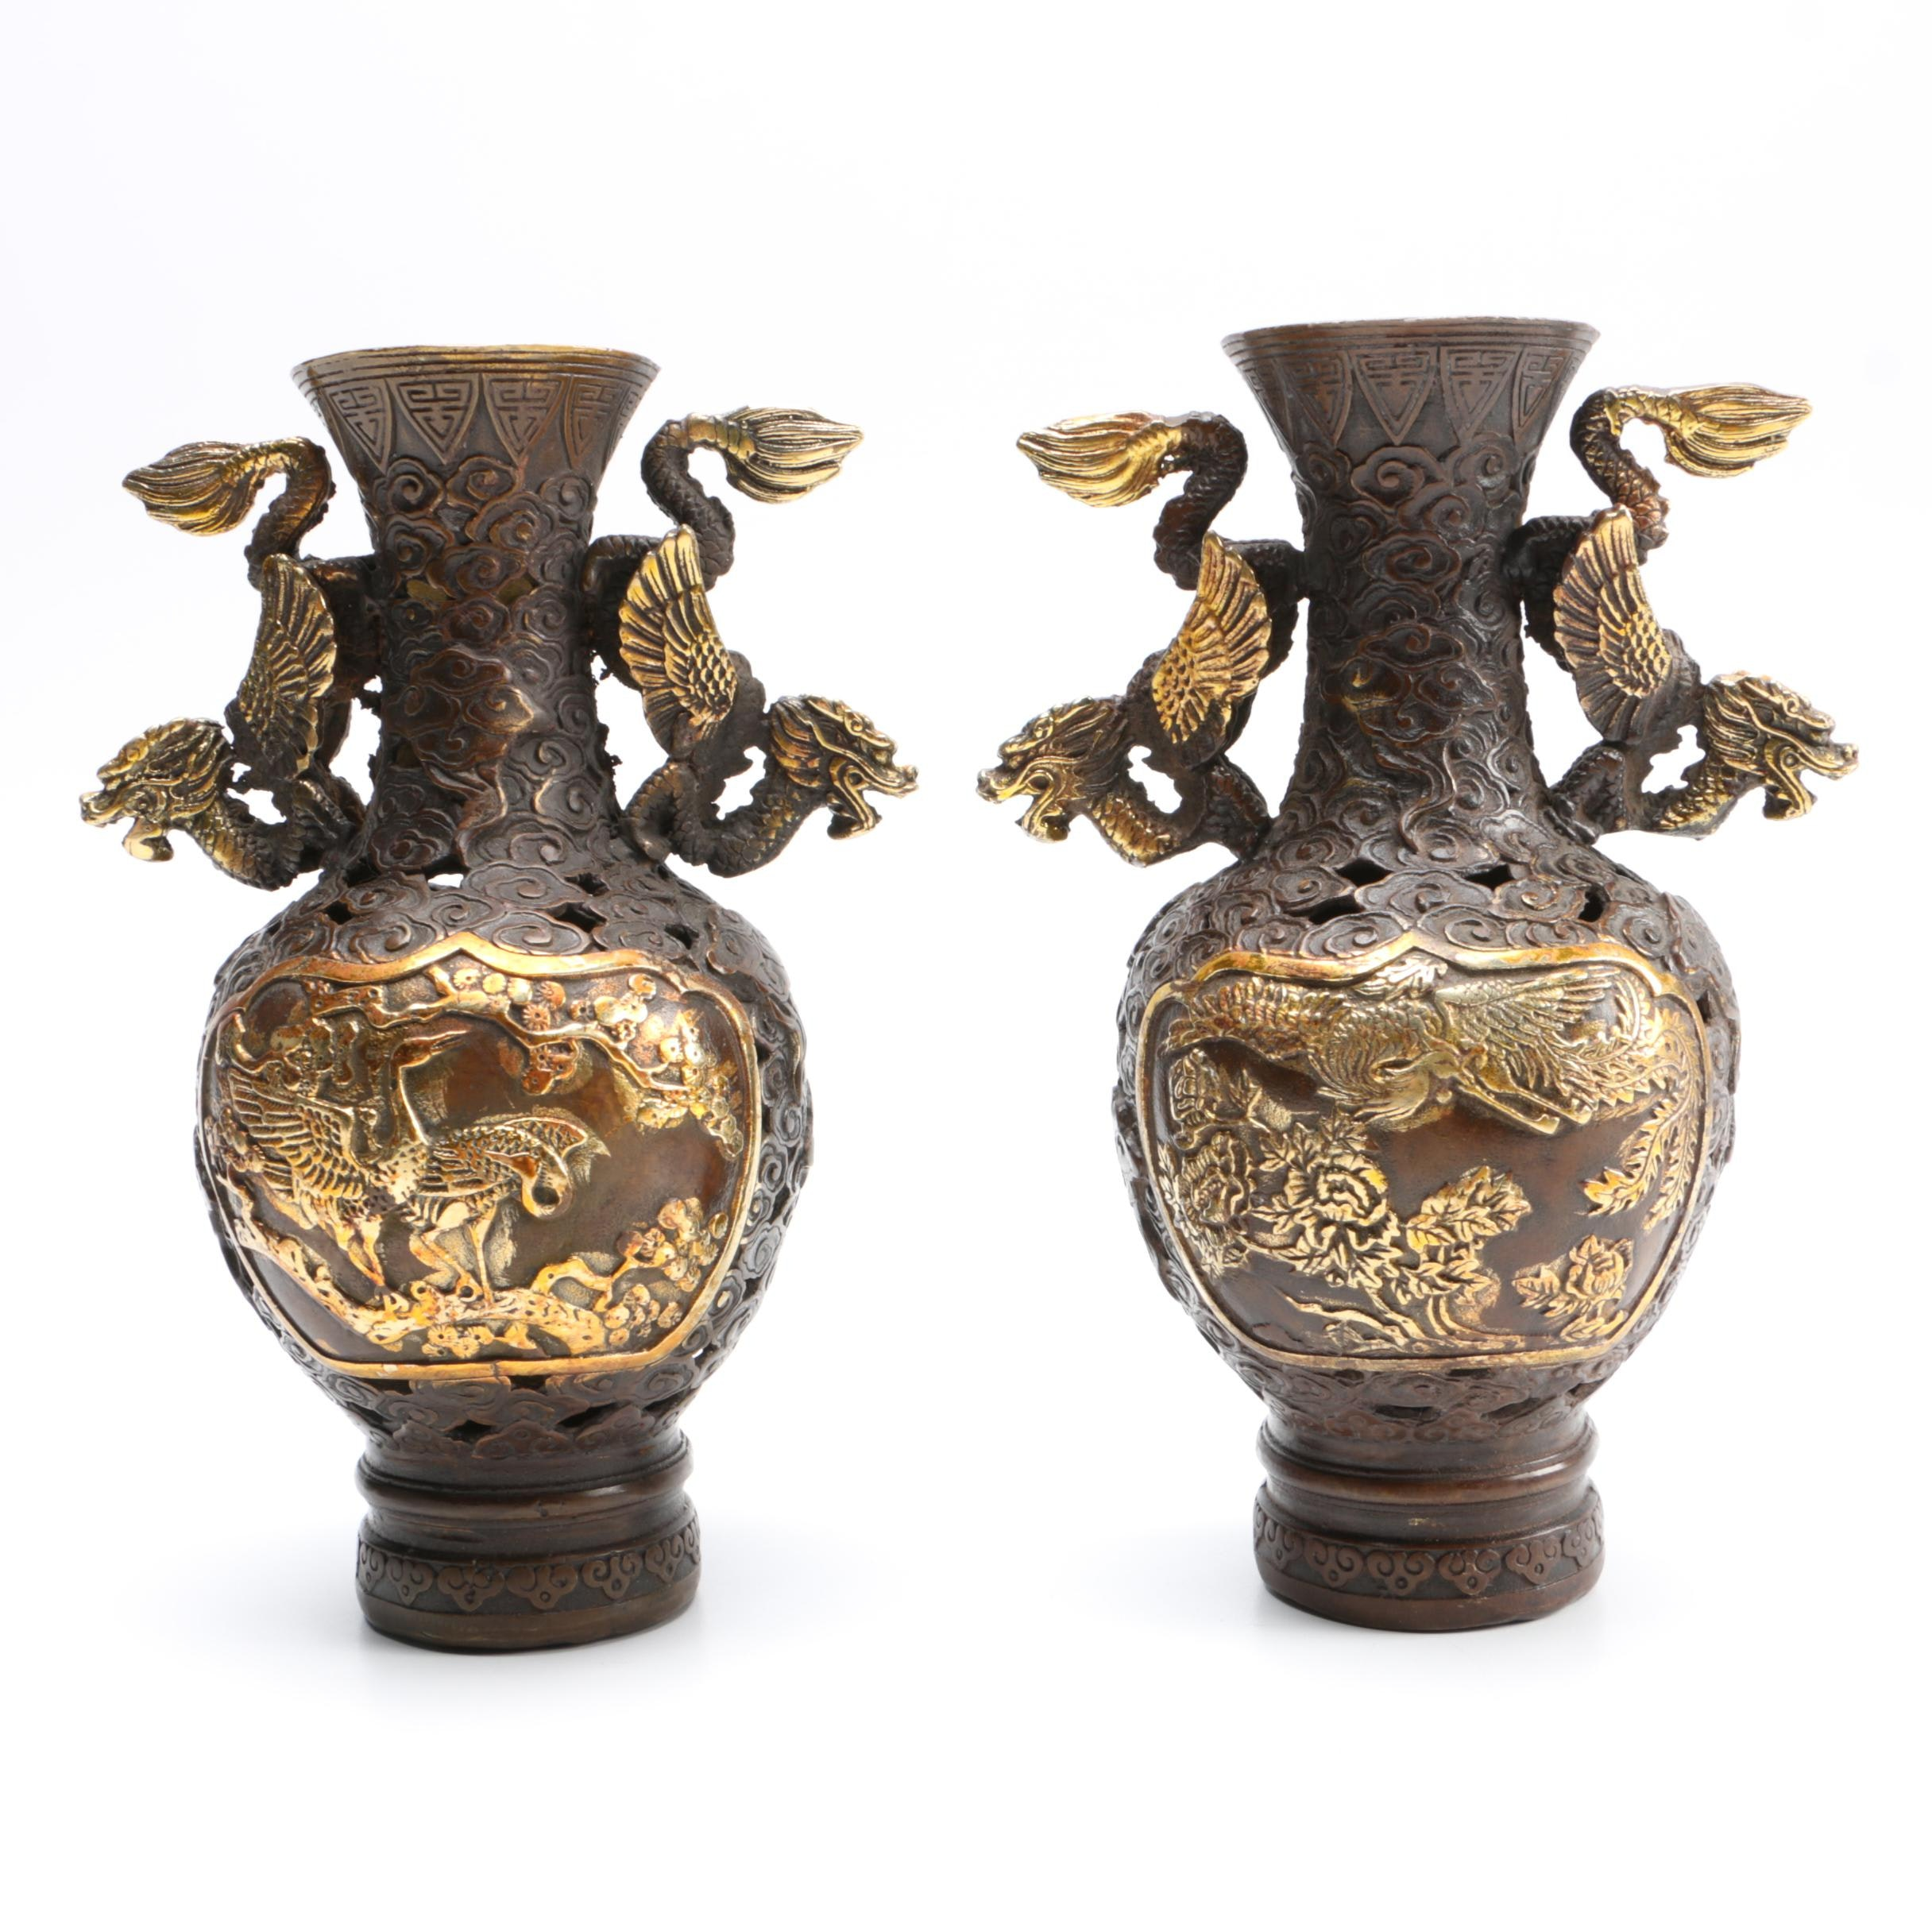 Chinese Brass Vases With Dragon Handles